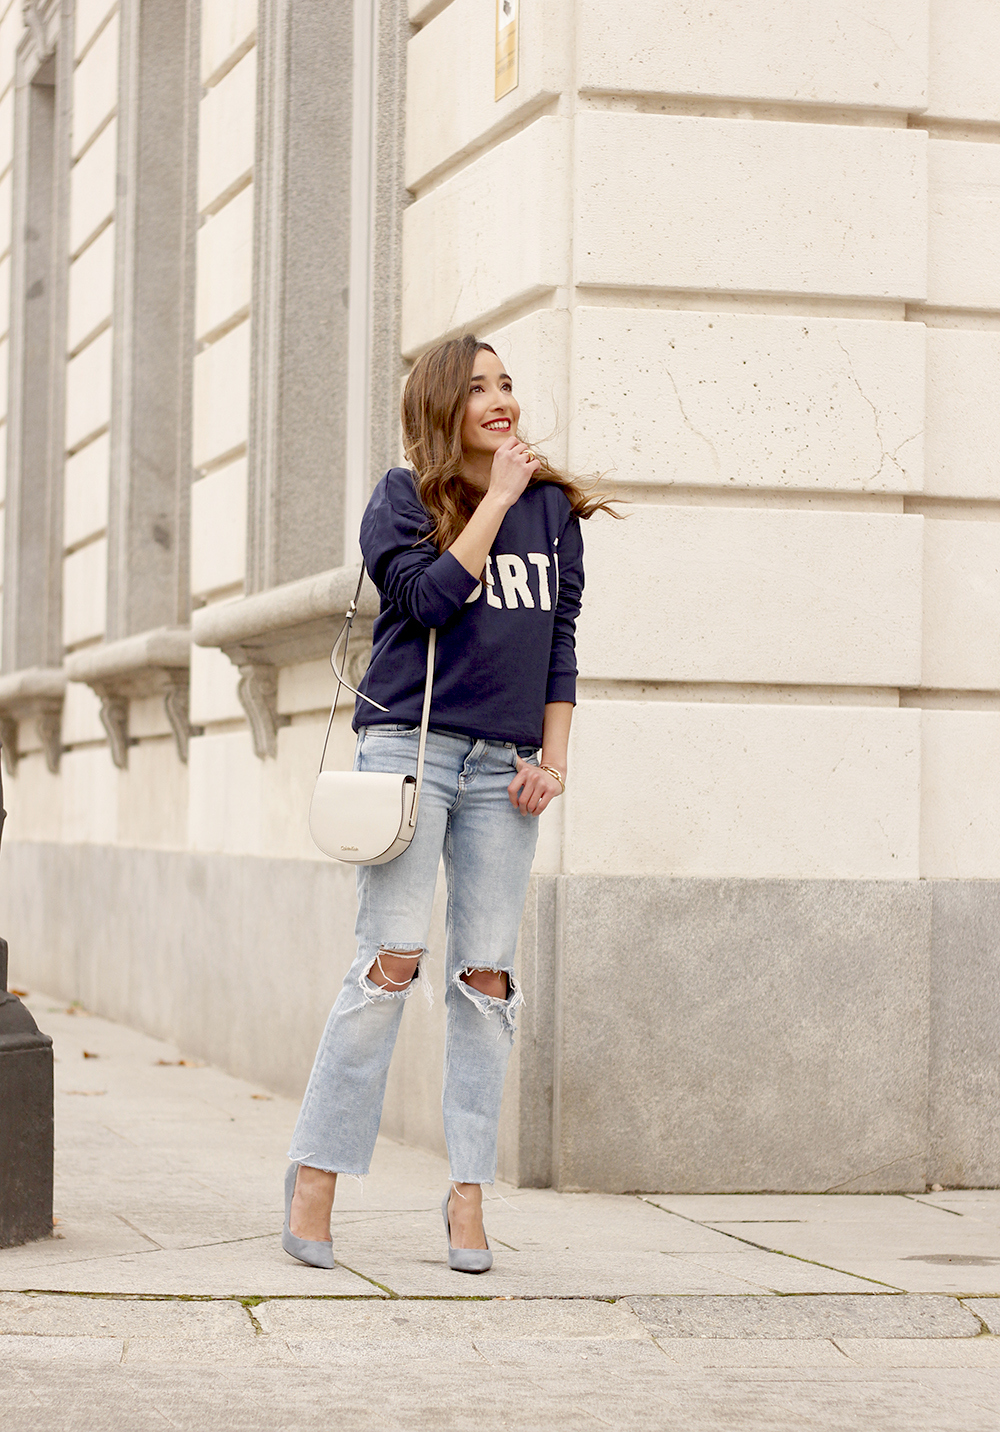 Sweatshirt ripped jeans clavin klein white bag high heels street style outfit 20194